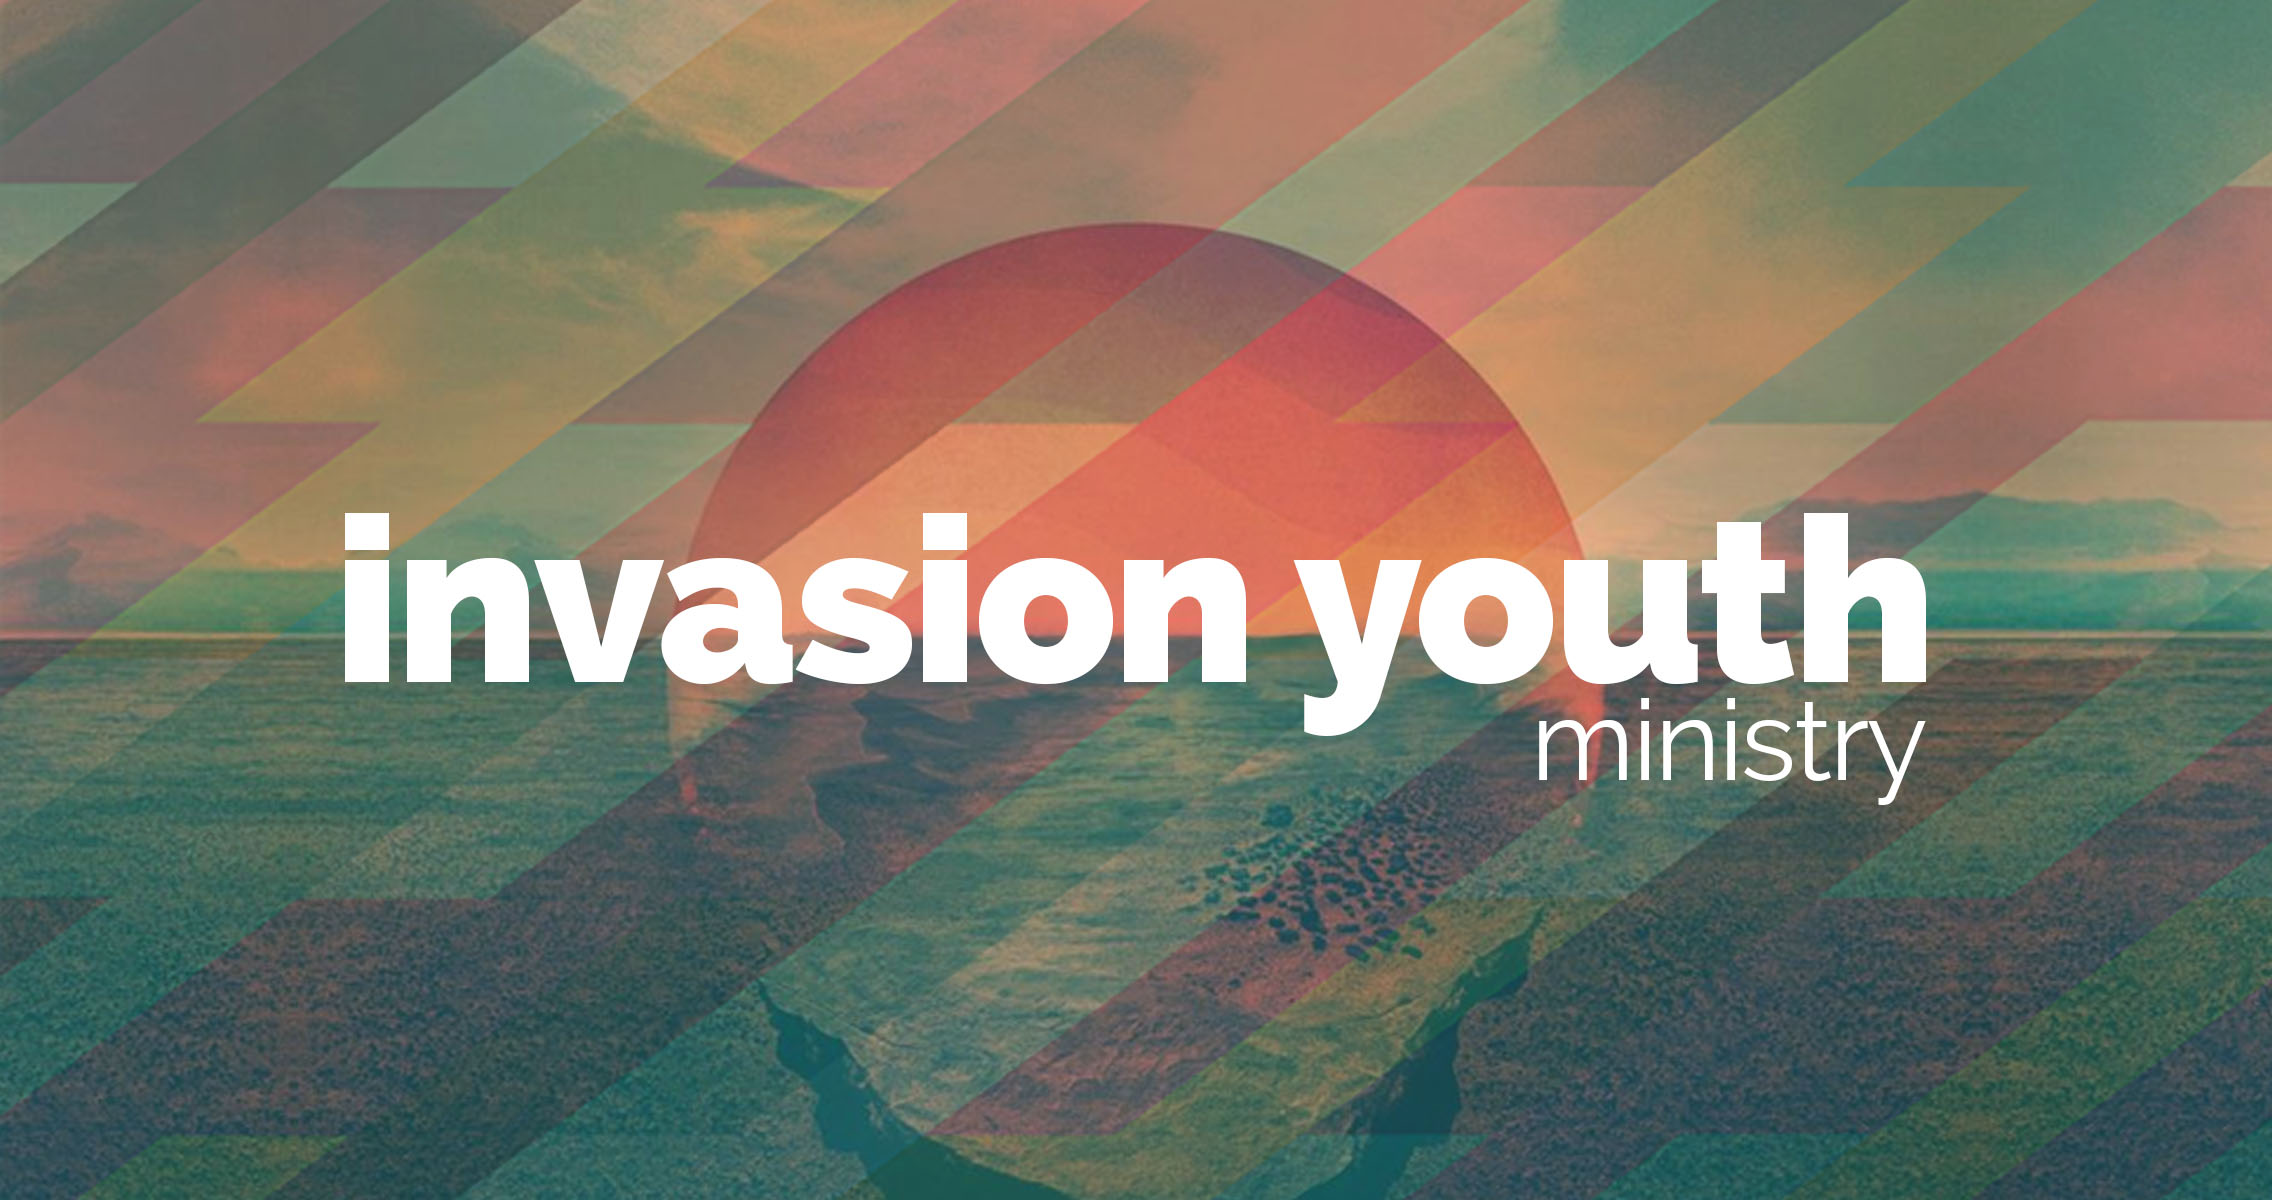 Invasion Youth